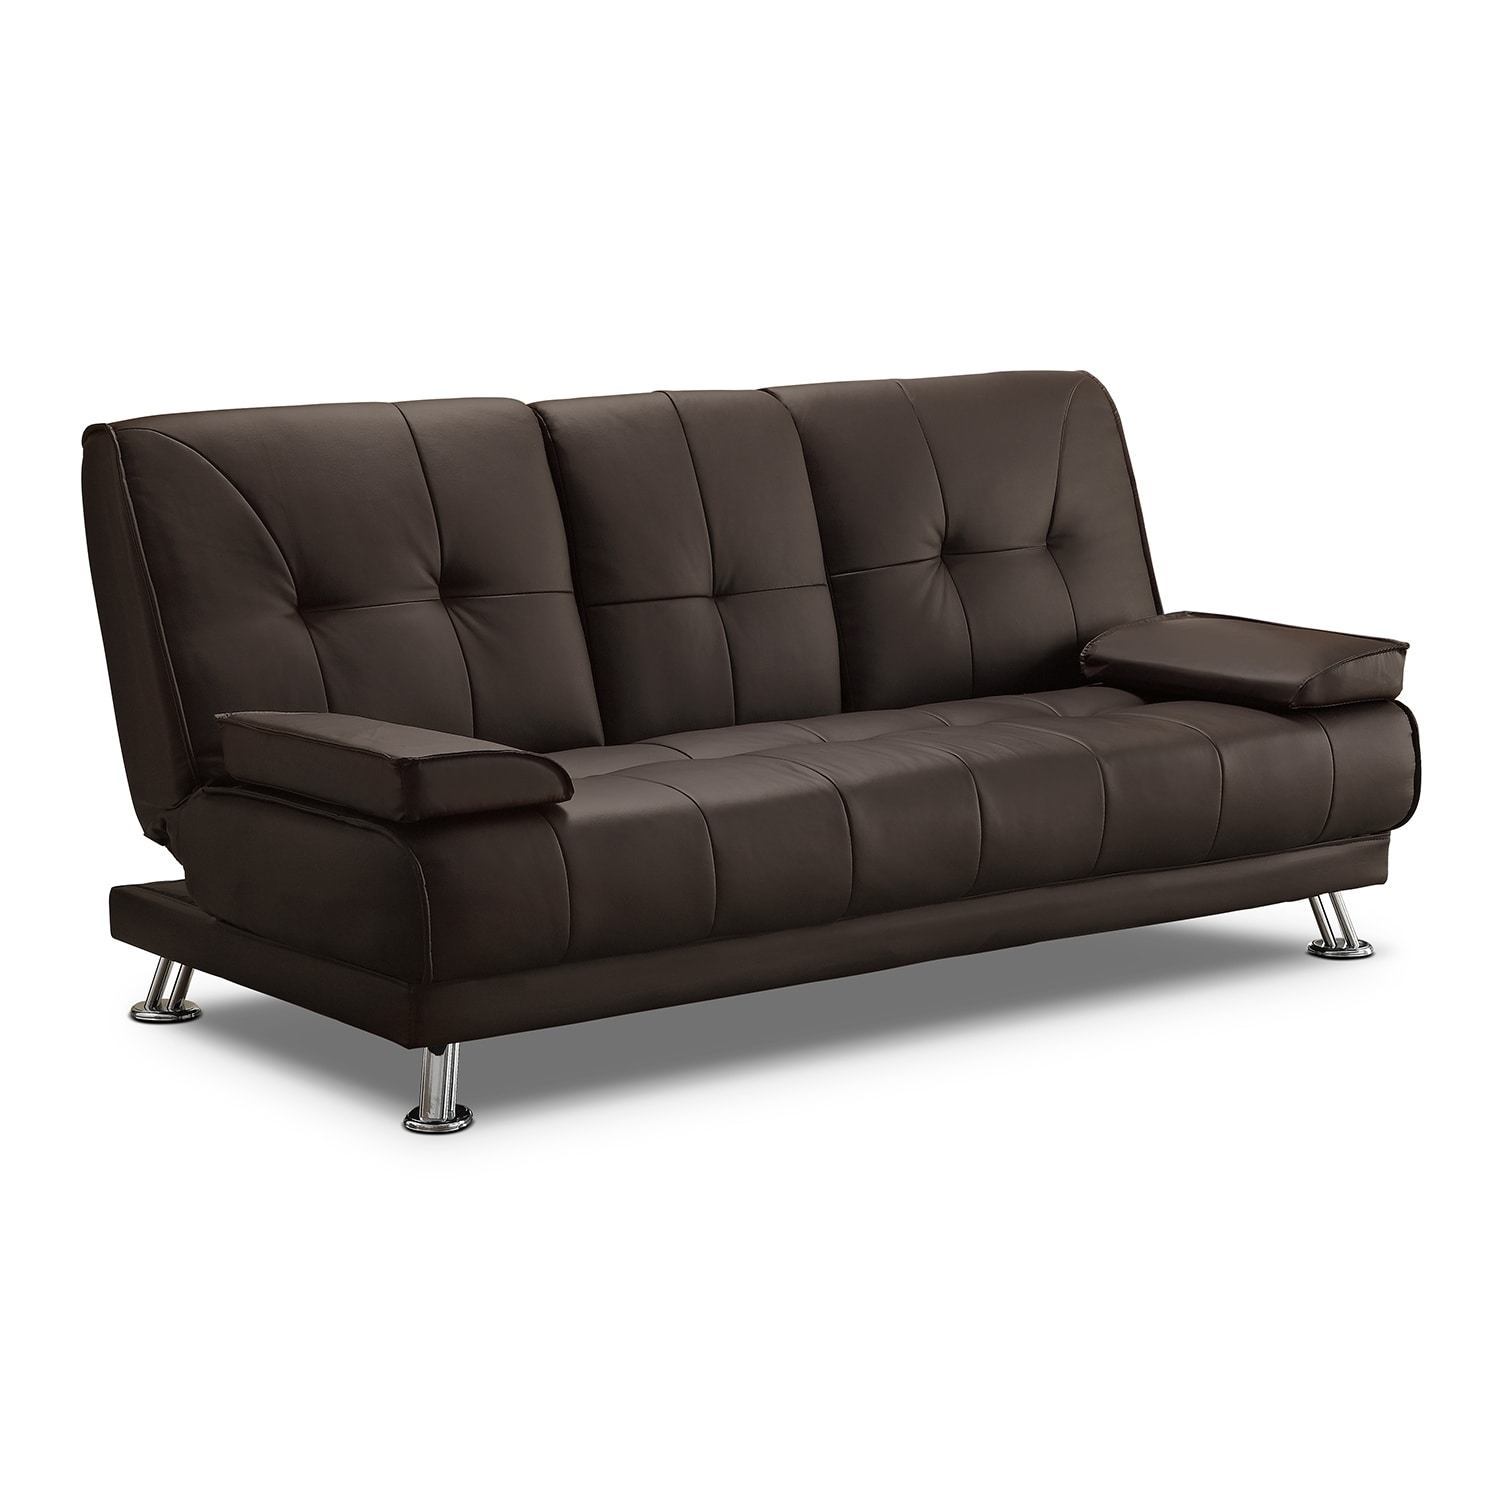 Flash Futon Sofa Bed - Dark Brown